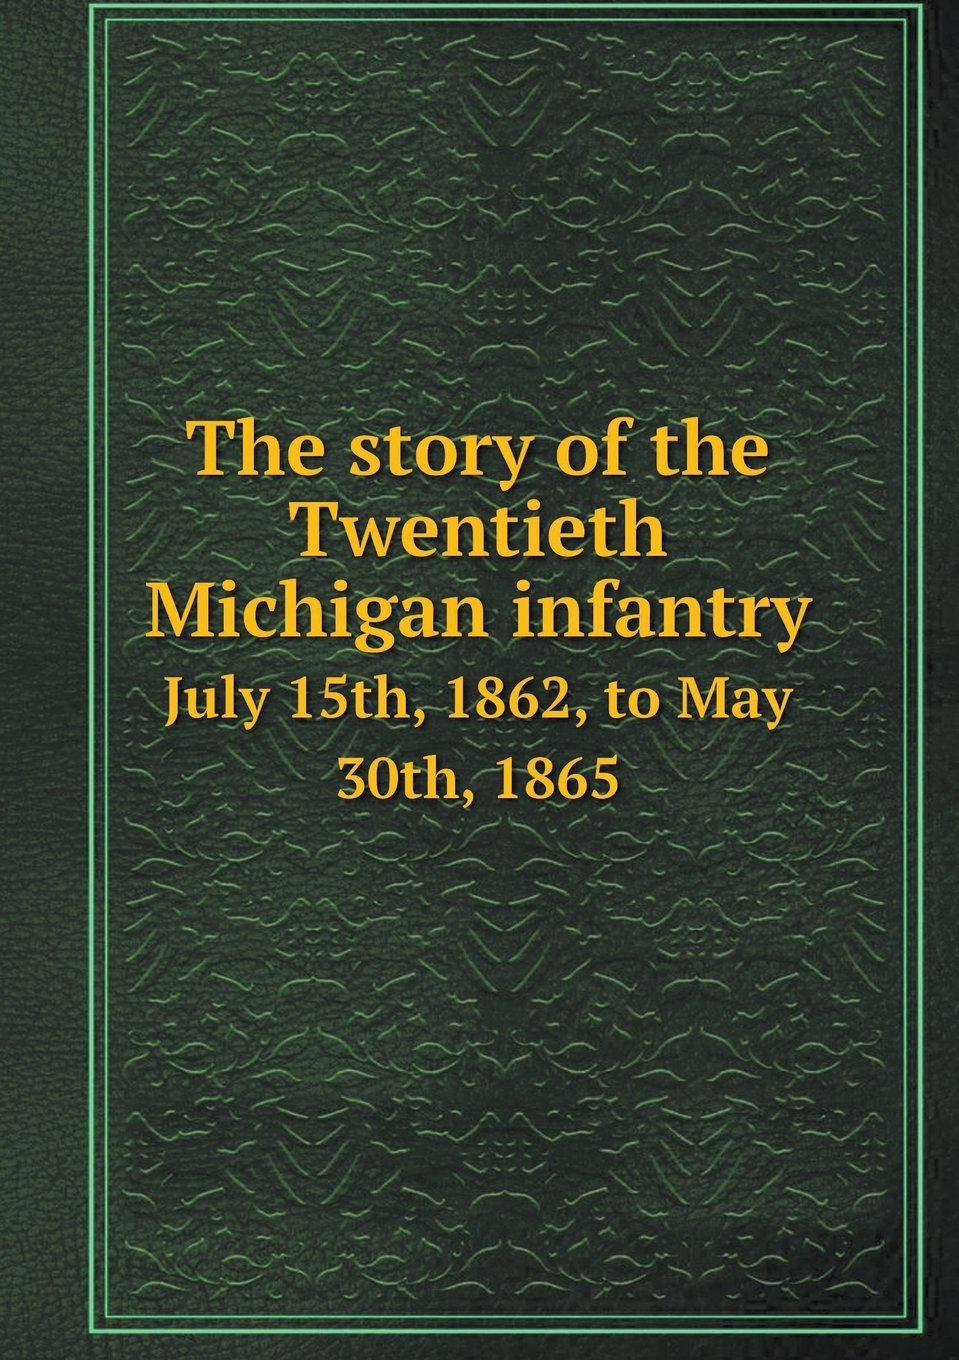 Download The story of the Twentieth Michigan infantry July 15th, 1862, to May 30th, 1865 ebook